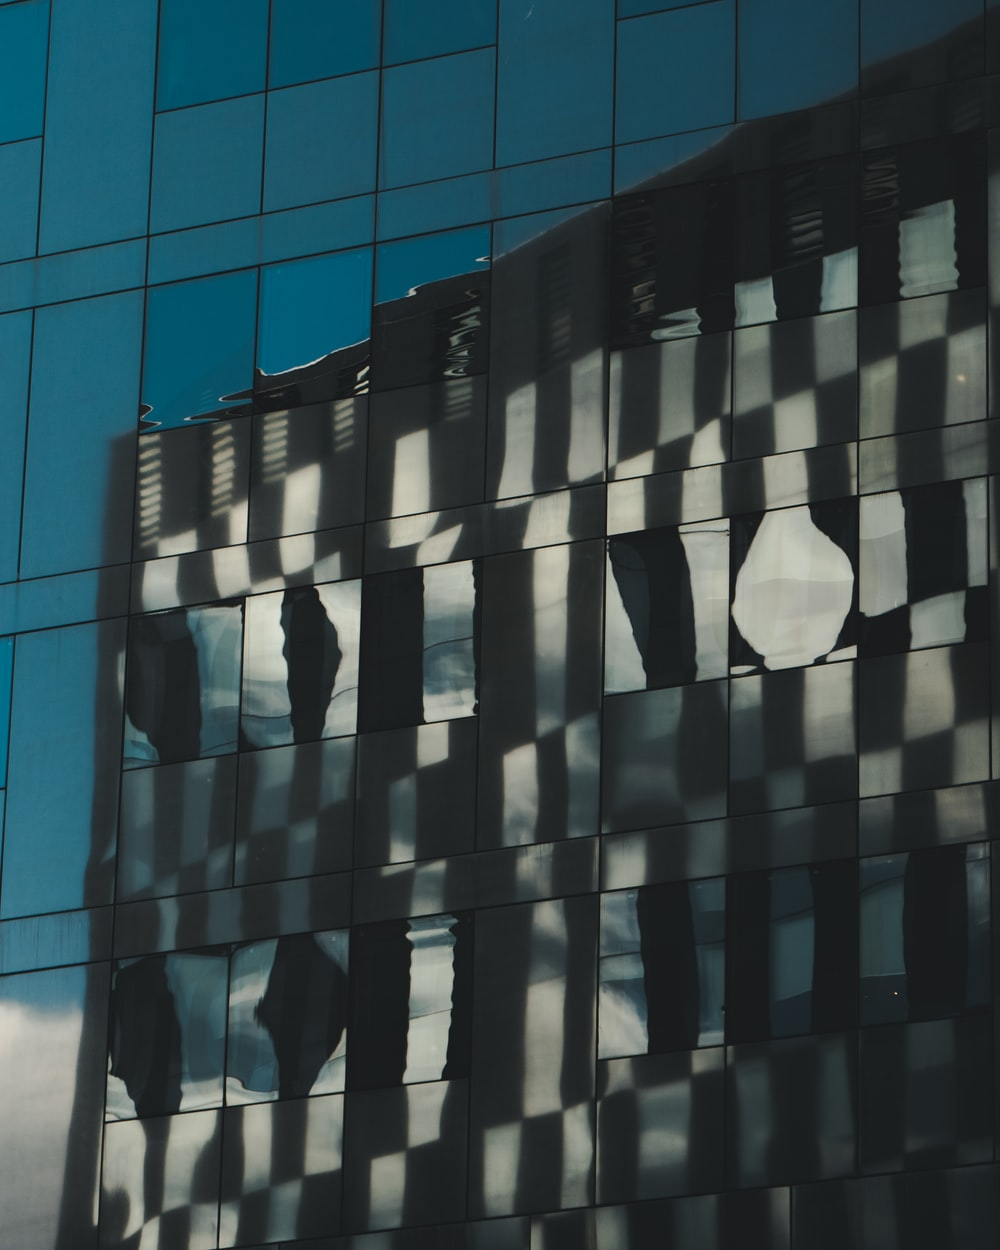 reflection of high rise building